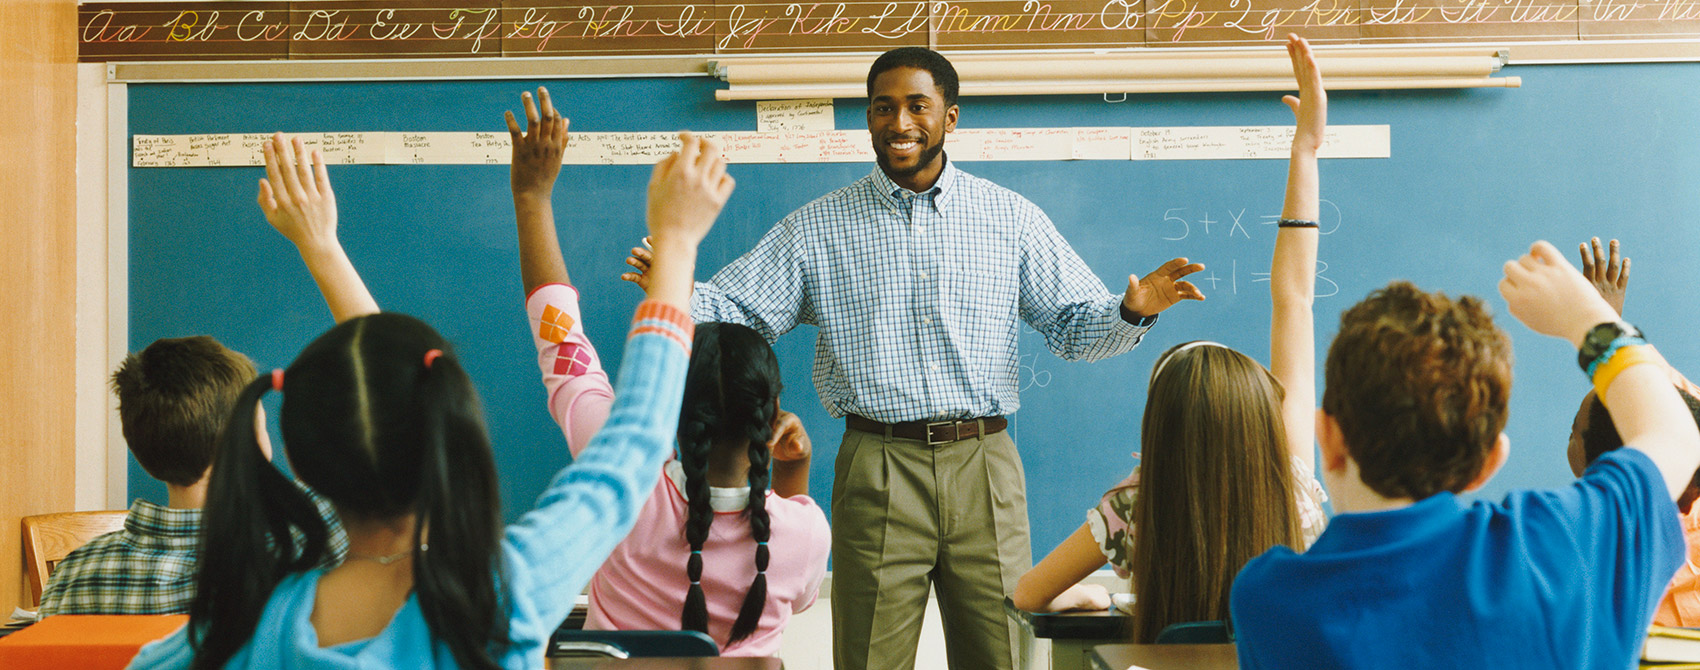 Math teacher stands in front of chalkboard with simple equations while class of diverse middle school students raise hands to answer the question.